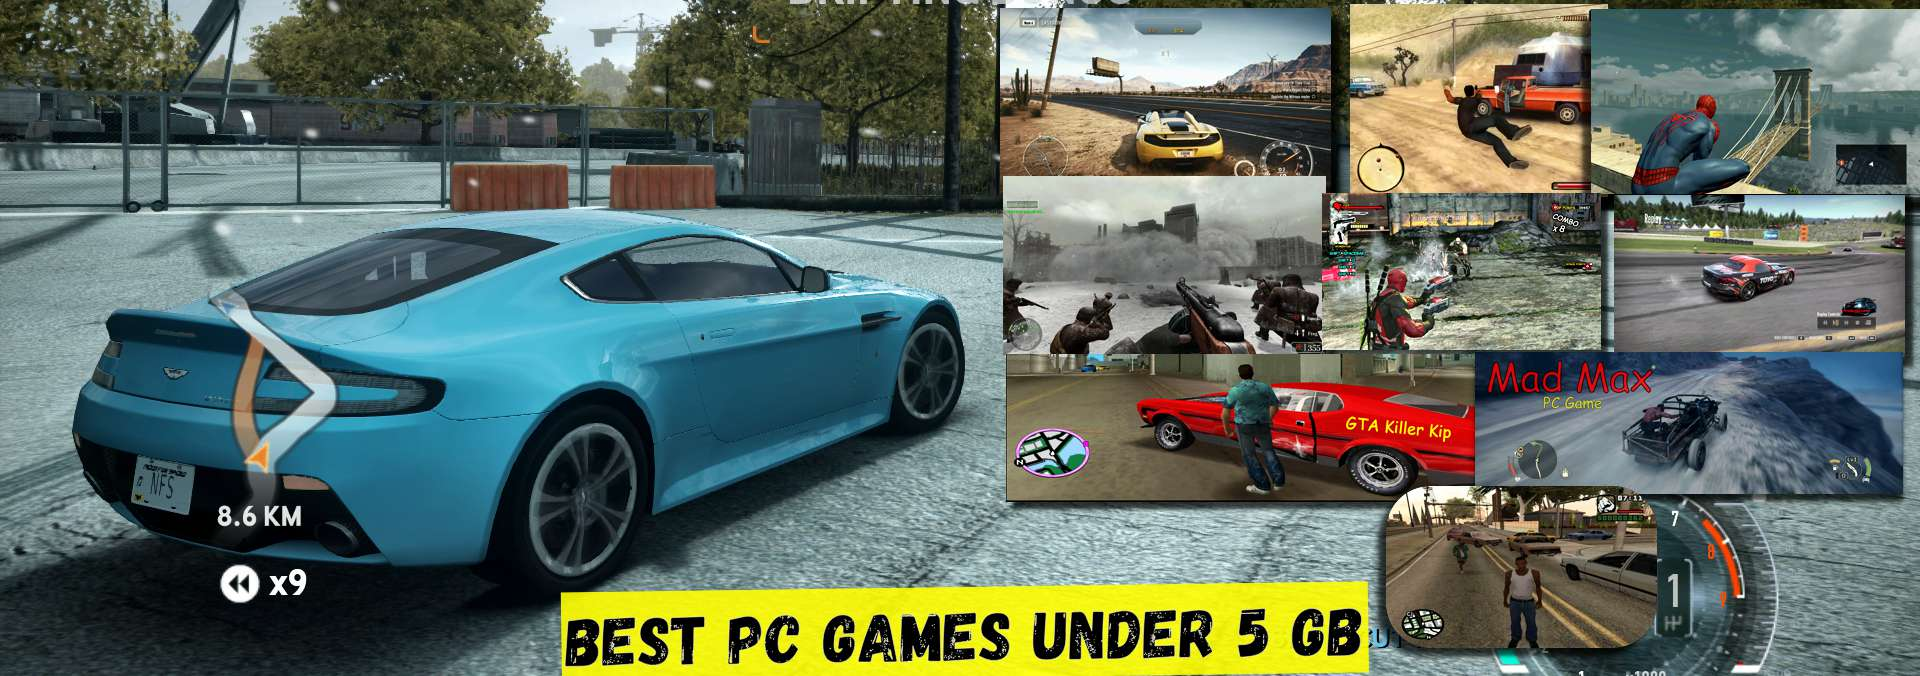 Best pc games under 5GB – Full collection with the download link